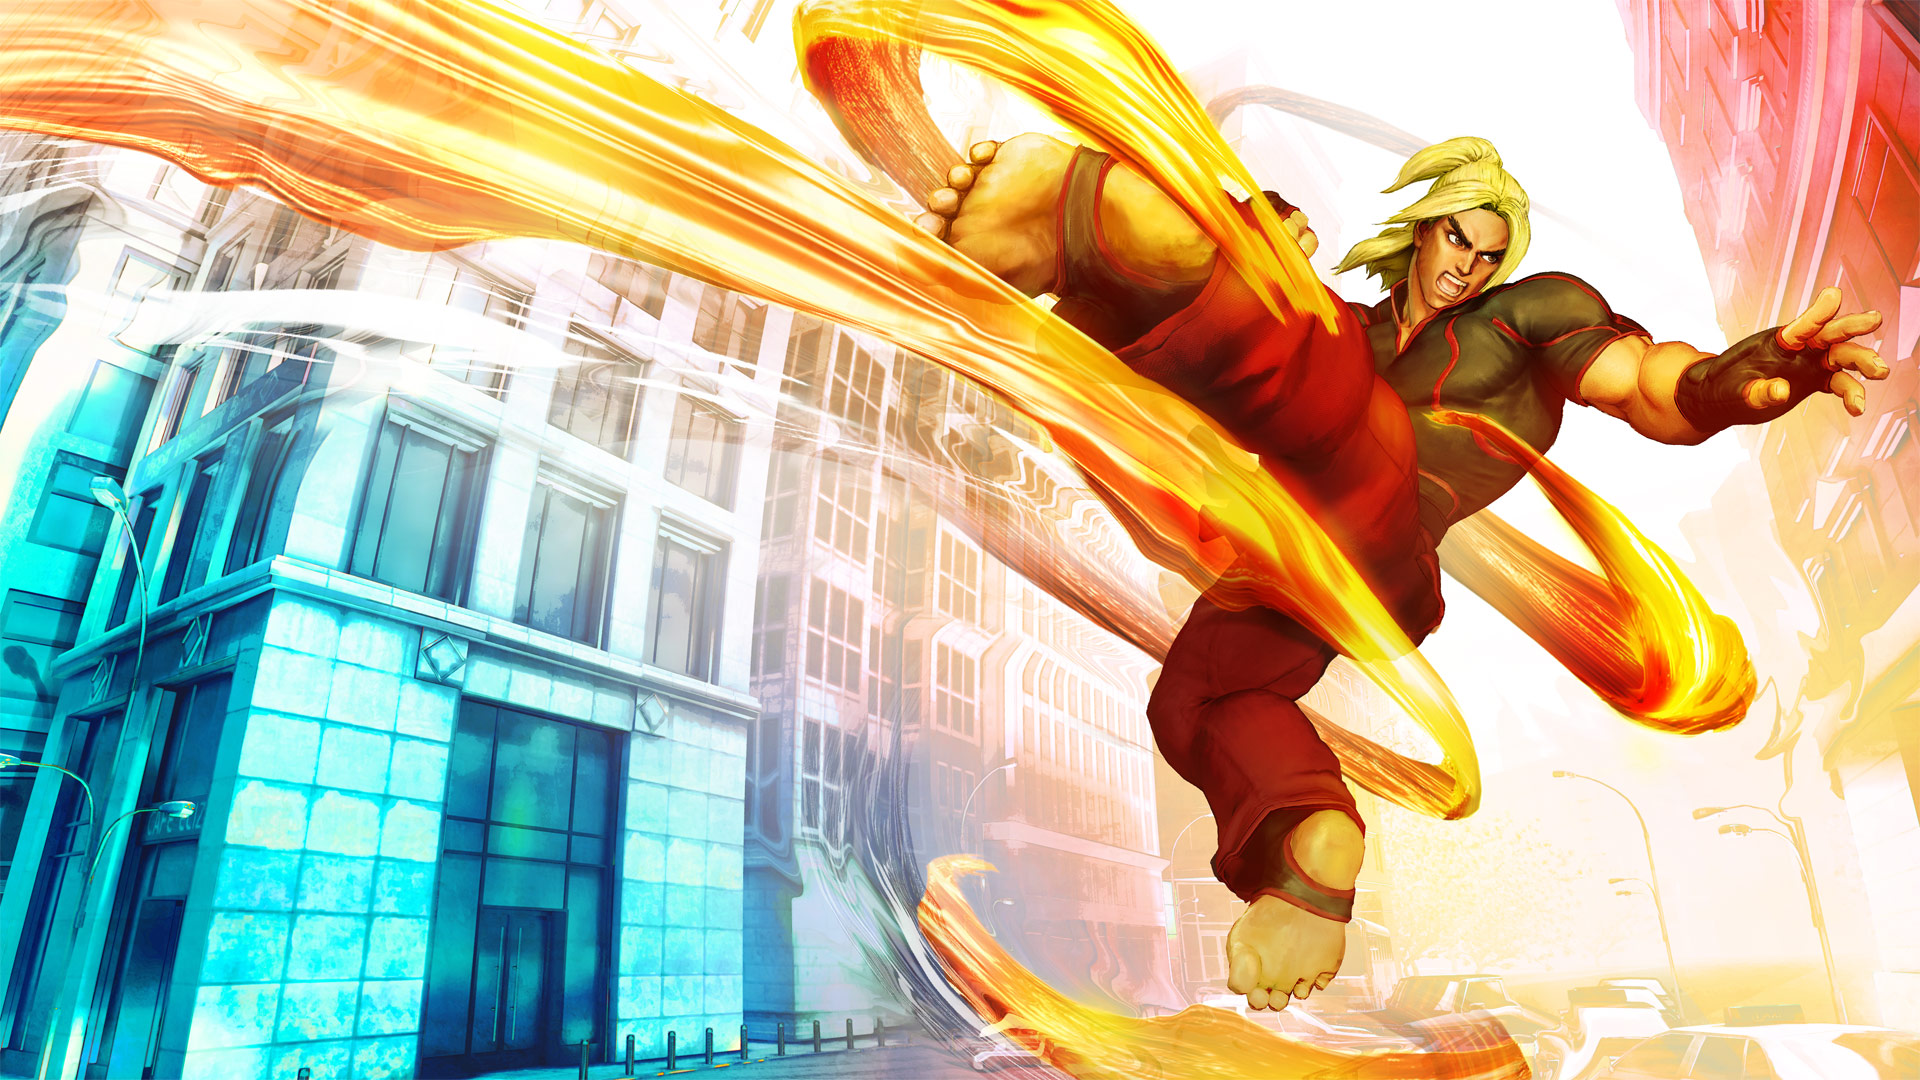 Ken Street Fighter 5 SDCC 2015 reveal 13 out of 13 image gallery